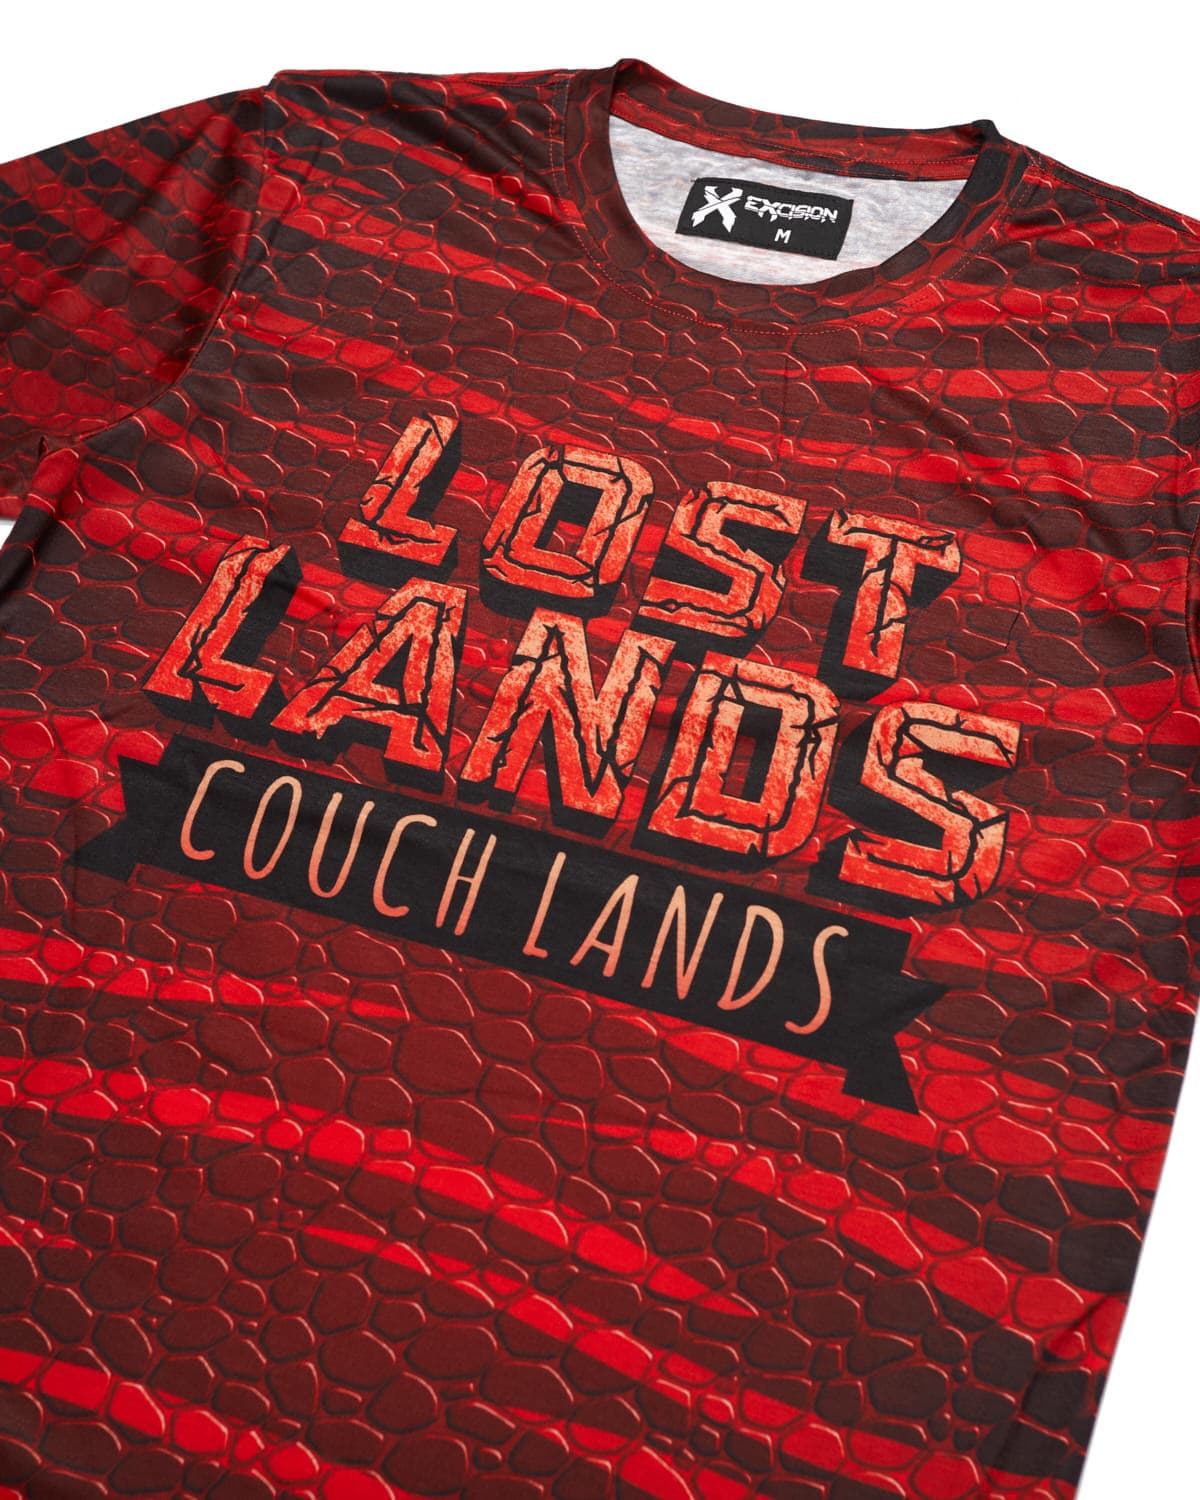 'Couch Lands' Dye Sub Tee - Red